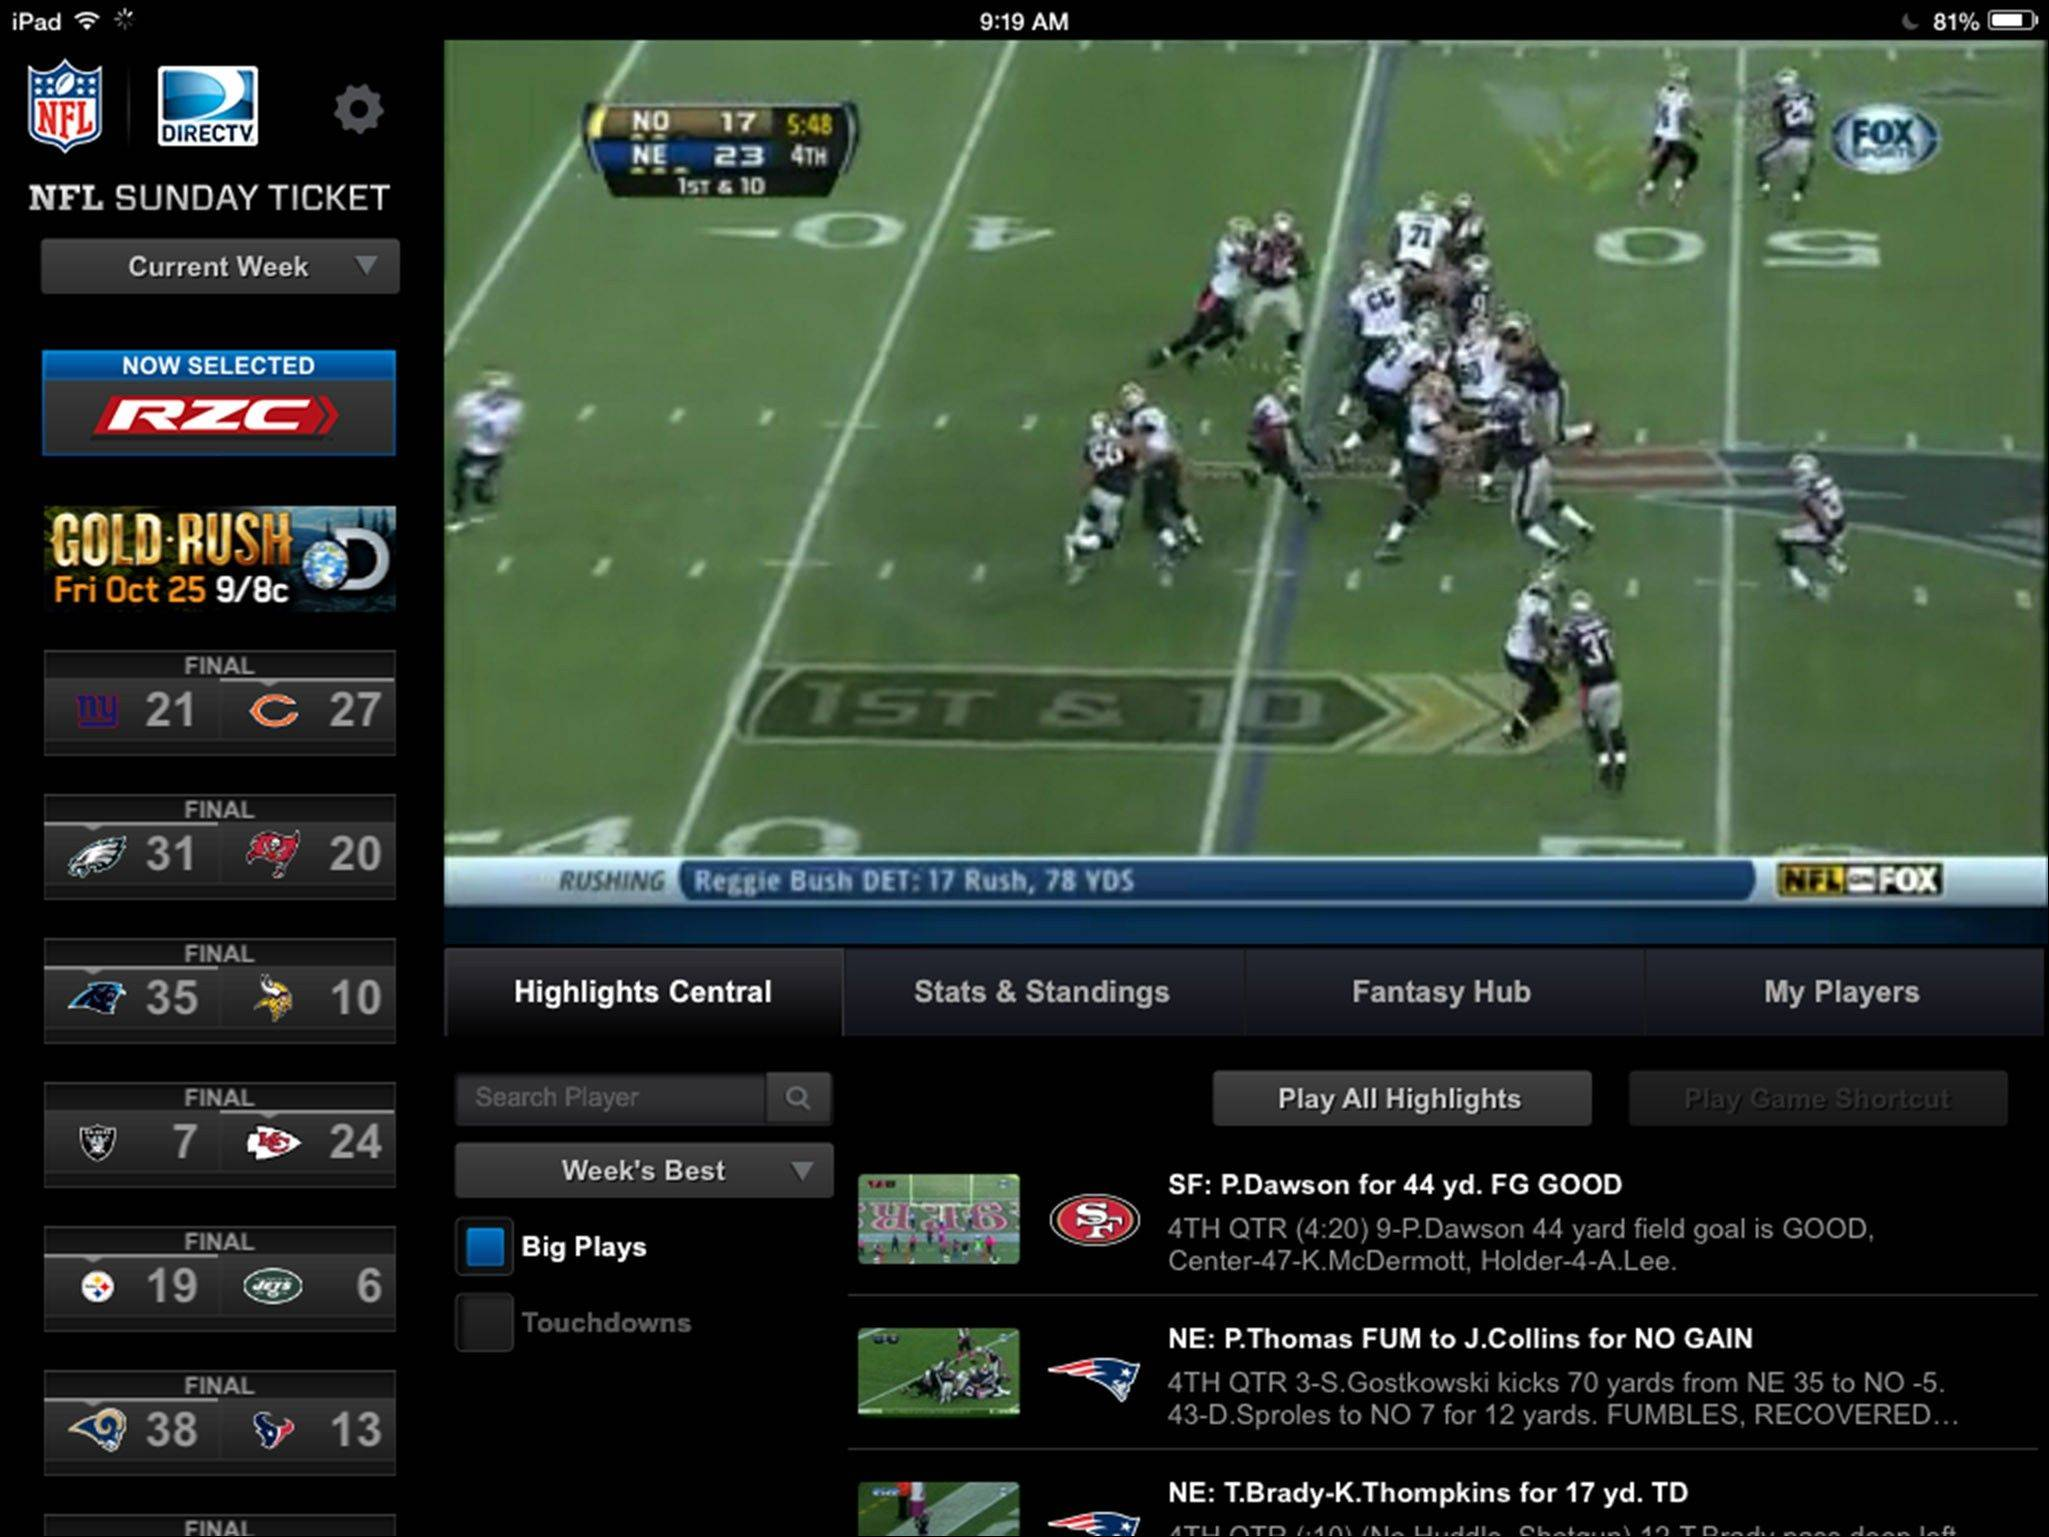 This image made from an NFL Sunday Ticket computer tablet app shows highlights from the game between the New Orleans Saints and the New England Patriots via DirecTV.